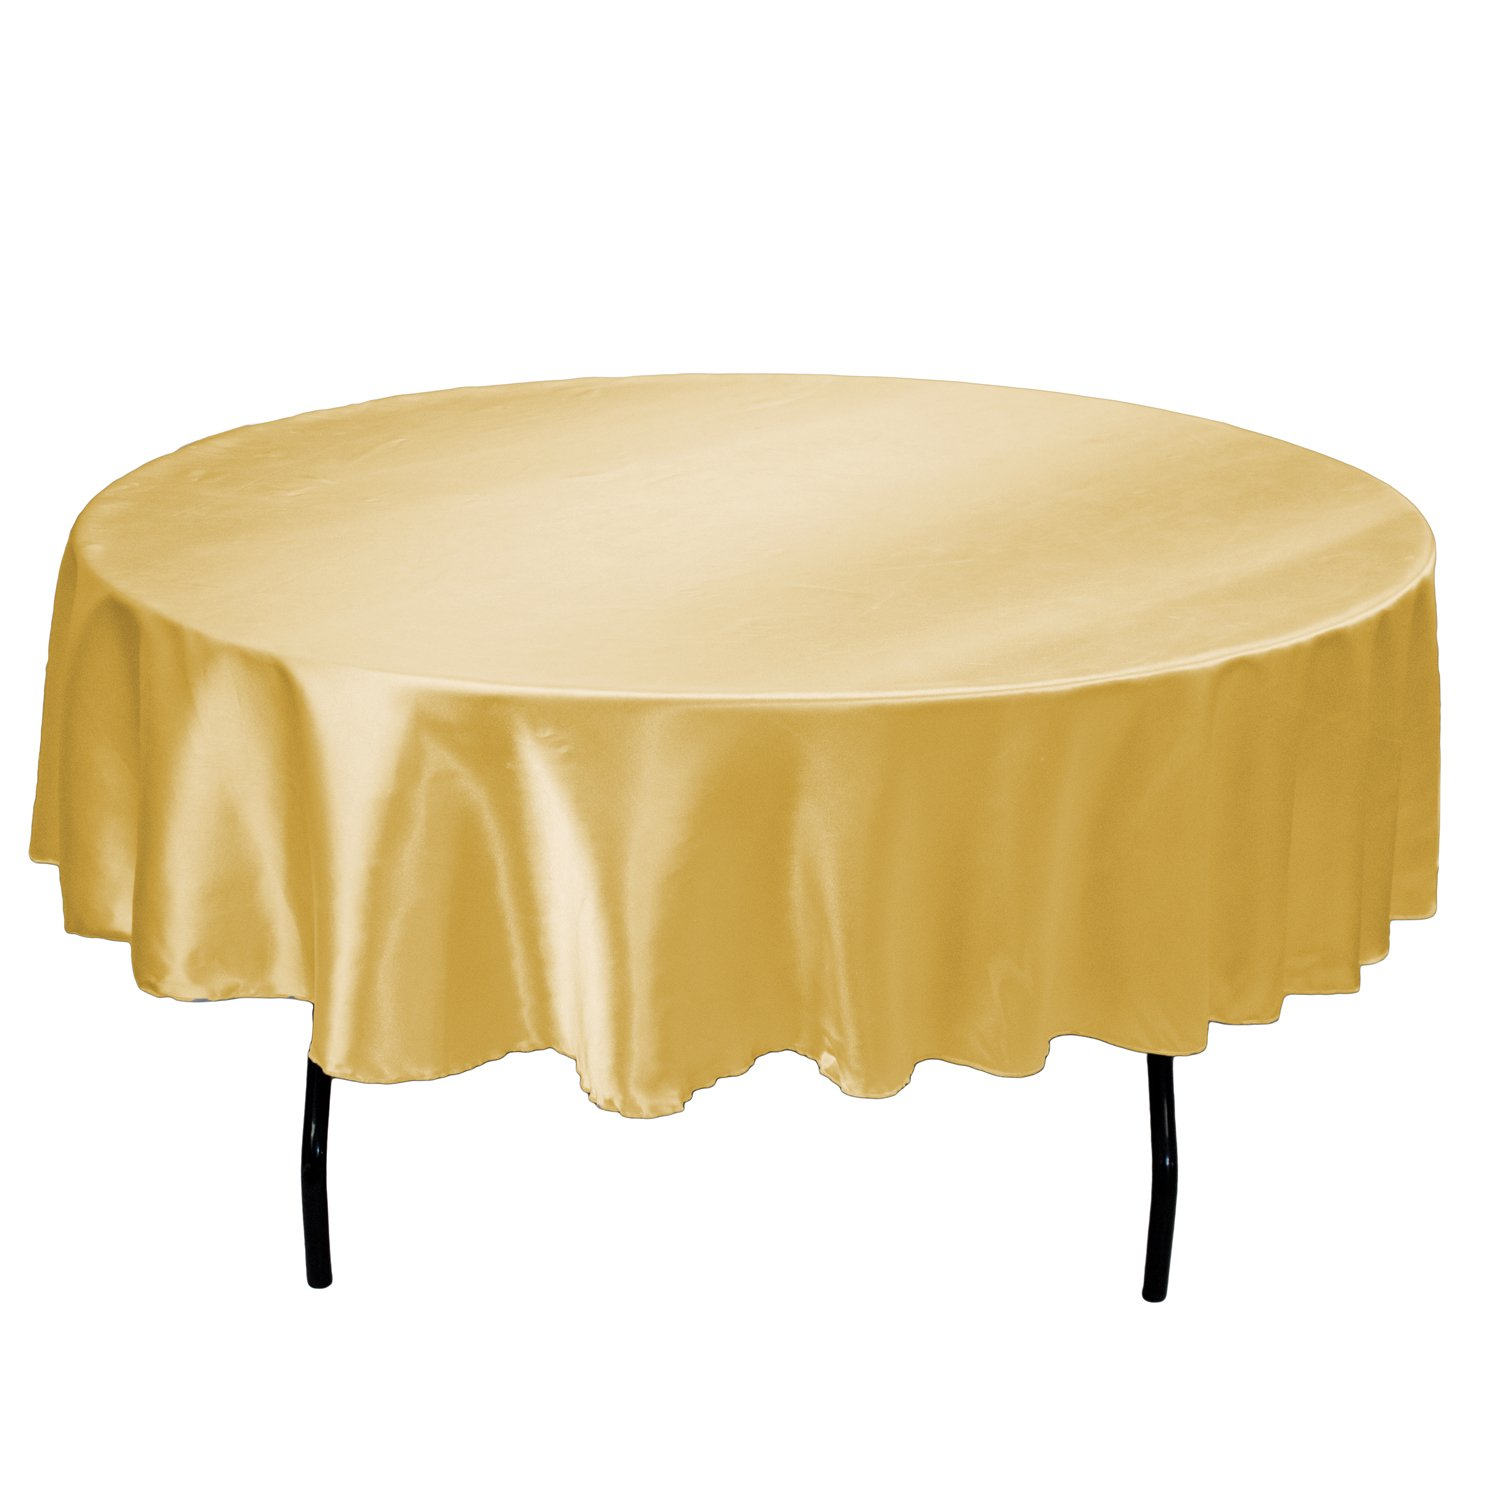 Linentablecloth 90 Inch Satin Tablecloth Round Gold